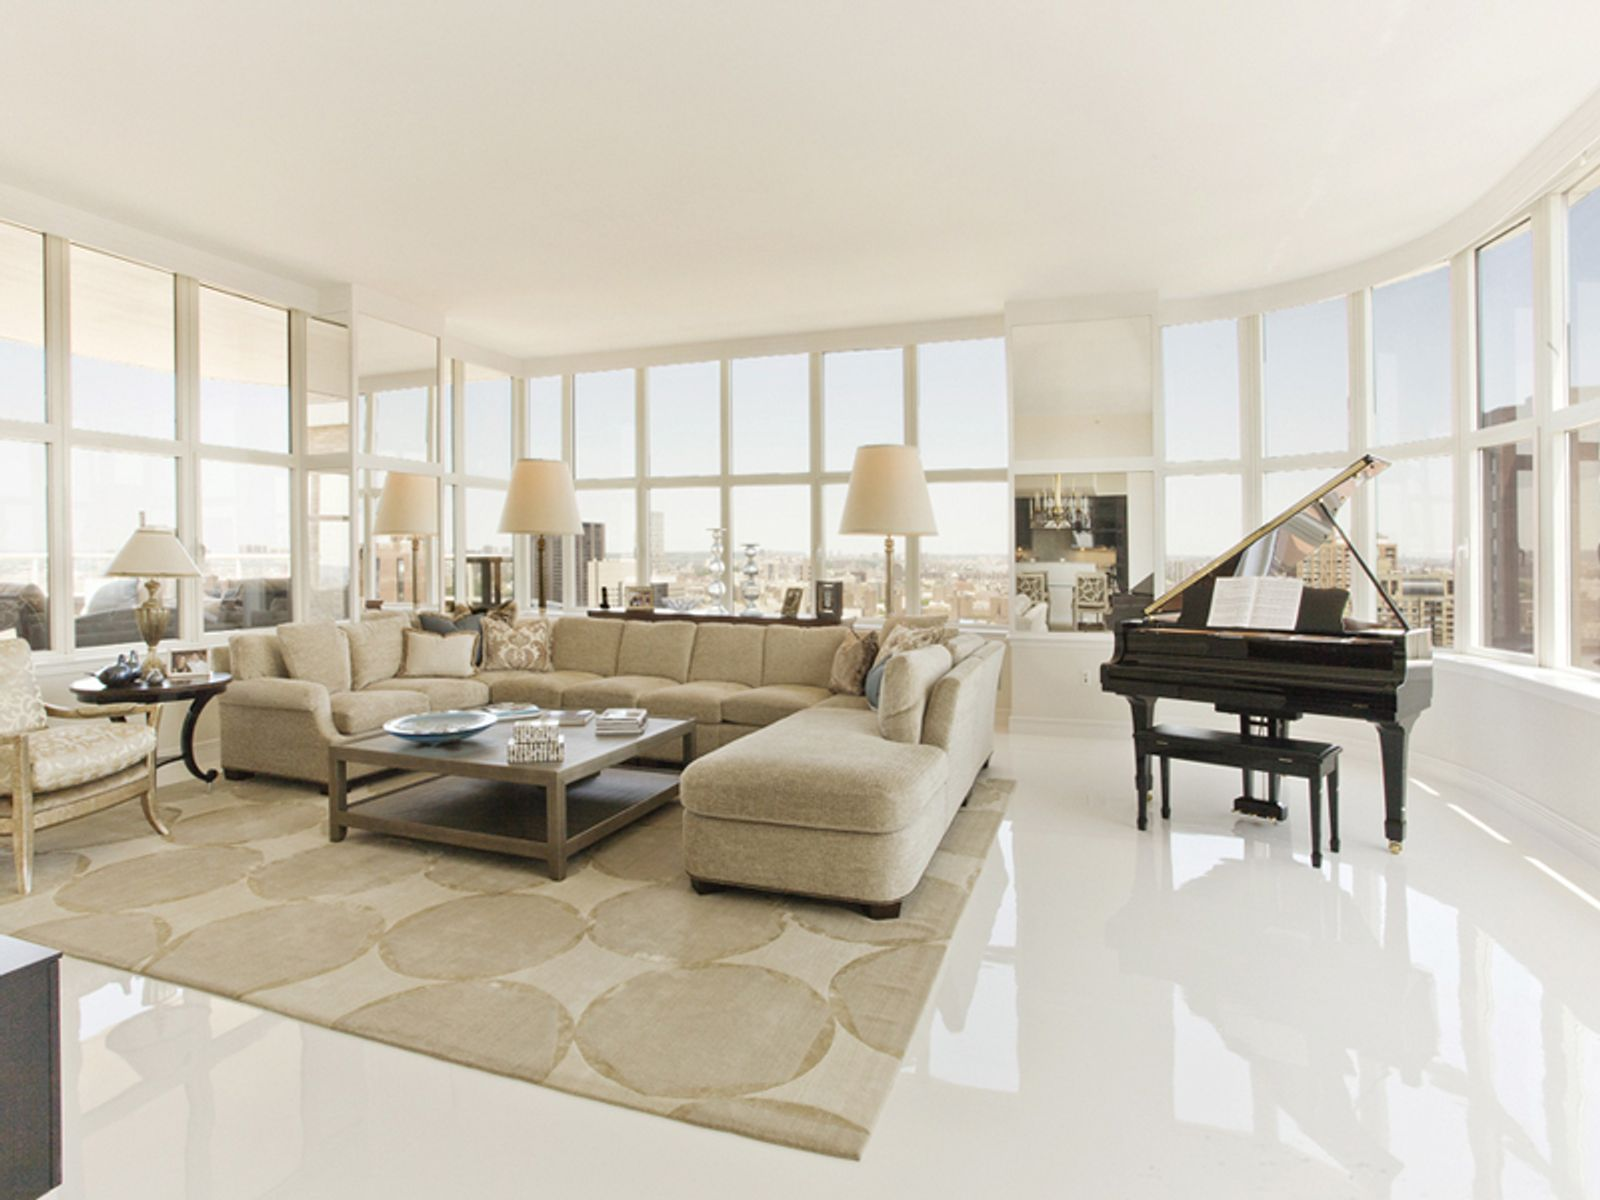 4 Bedrm Penthouse with Dramatic Terrace, New York NY Condominium - New York City Real Estate